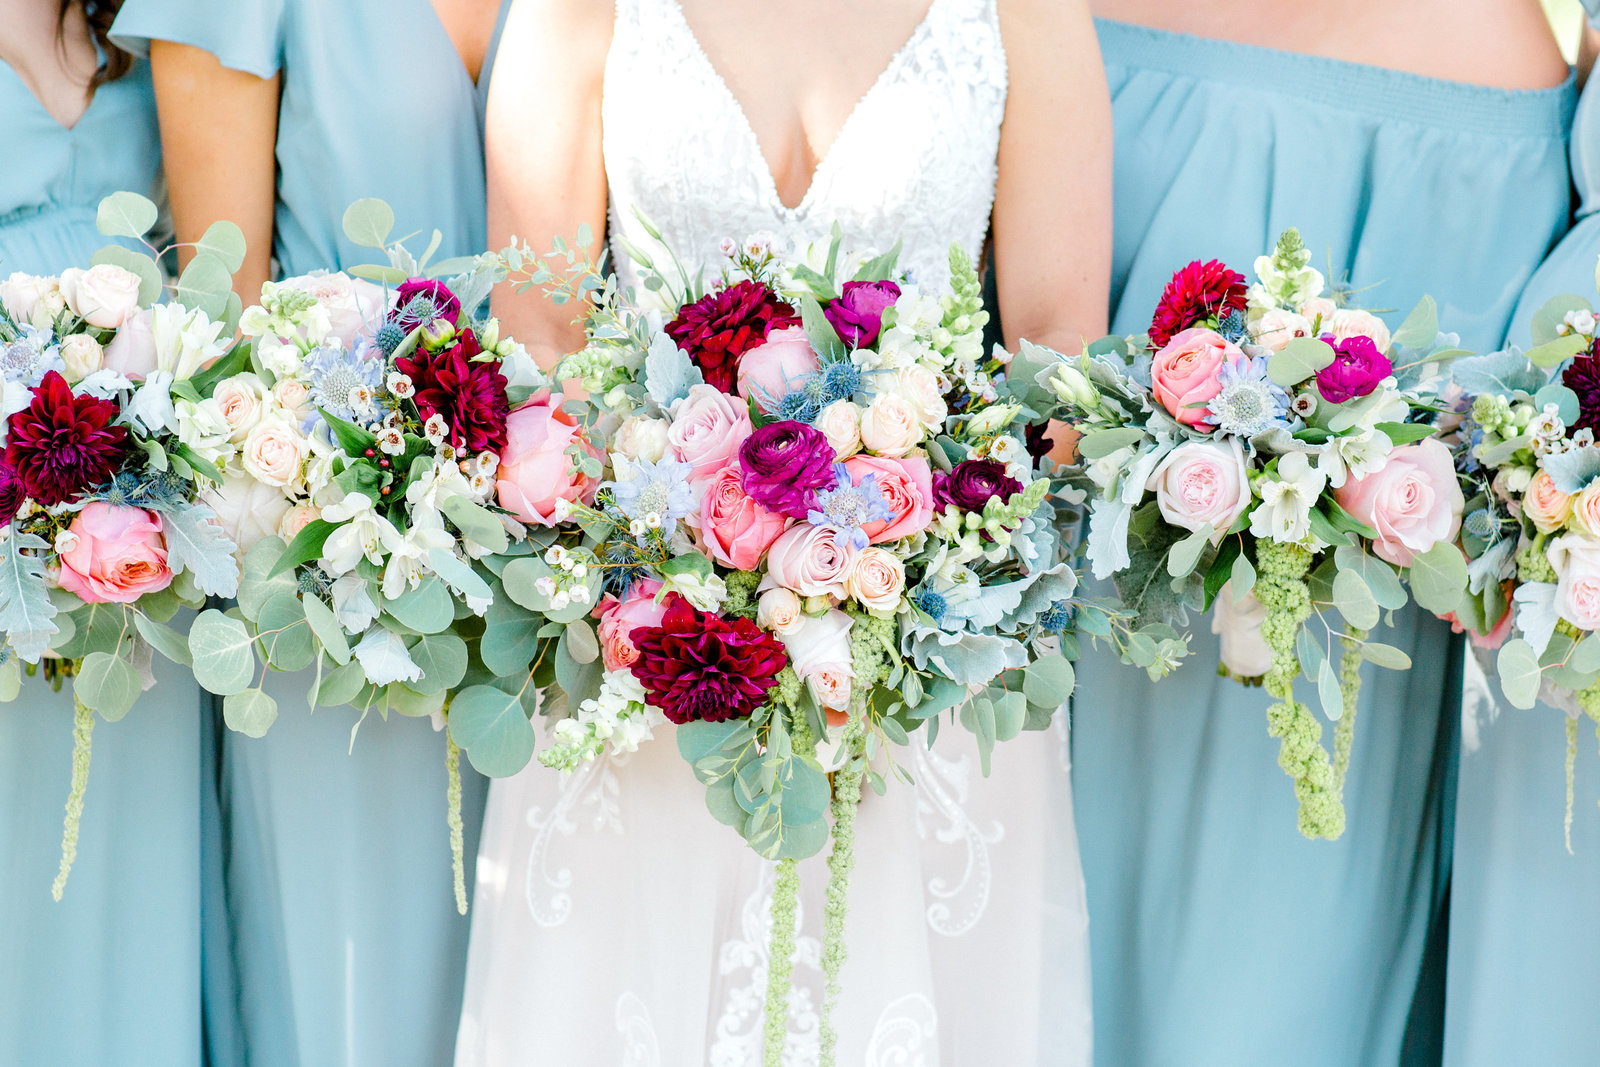 Bouquets with pastel colors and a pop of burgundy